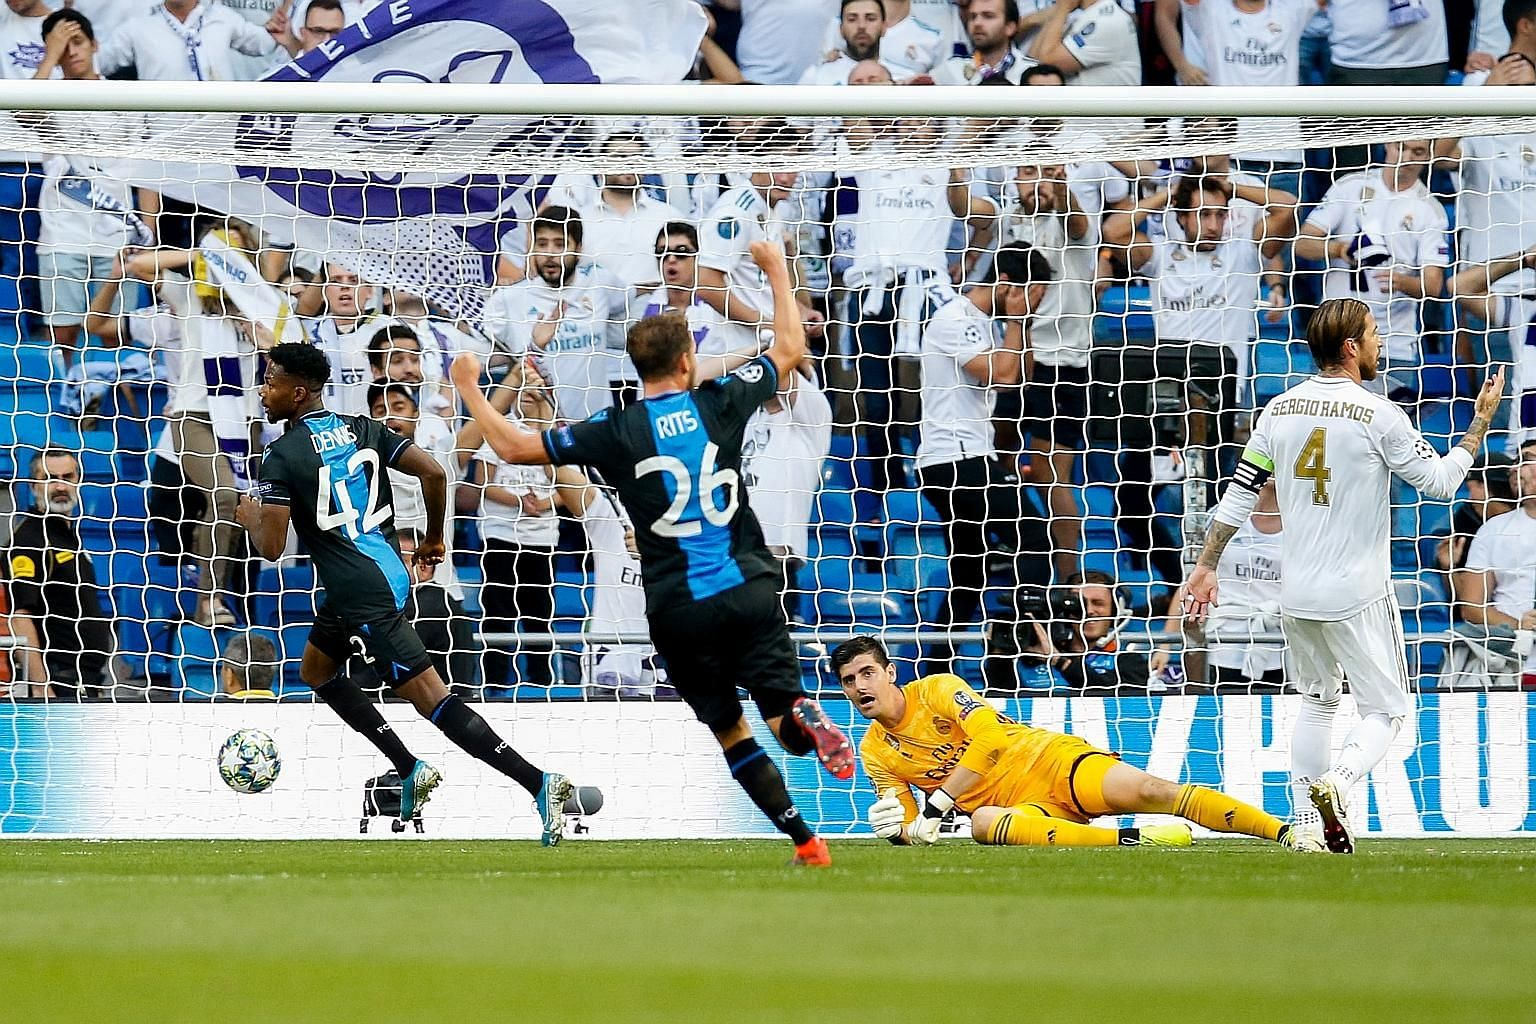 Brugge forward Emmanuel Bonaventure (left) reeling away after scoring the first goal in the Champions League Group A match against Real Madrid at the Santiago Bernabeu on Tuesday. Real recovered to clinch a 2-2 draw.